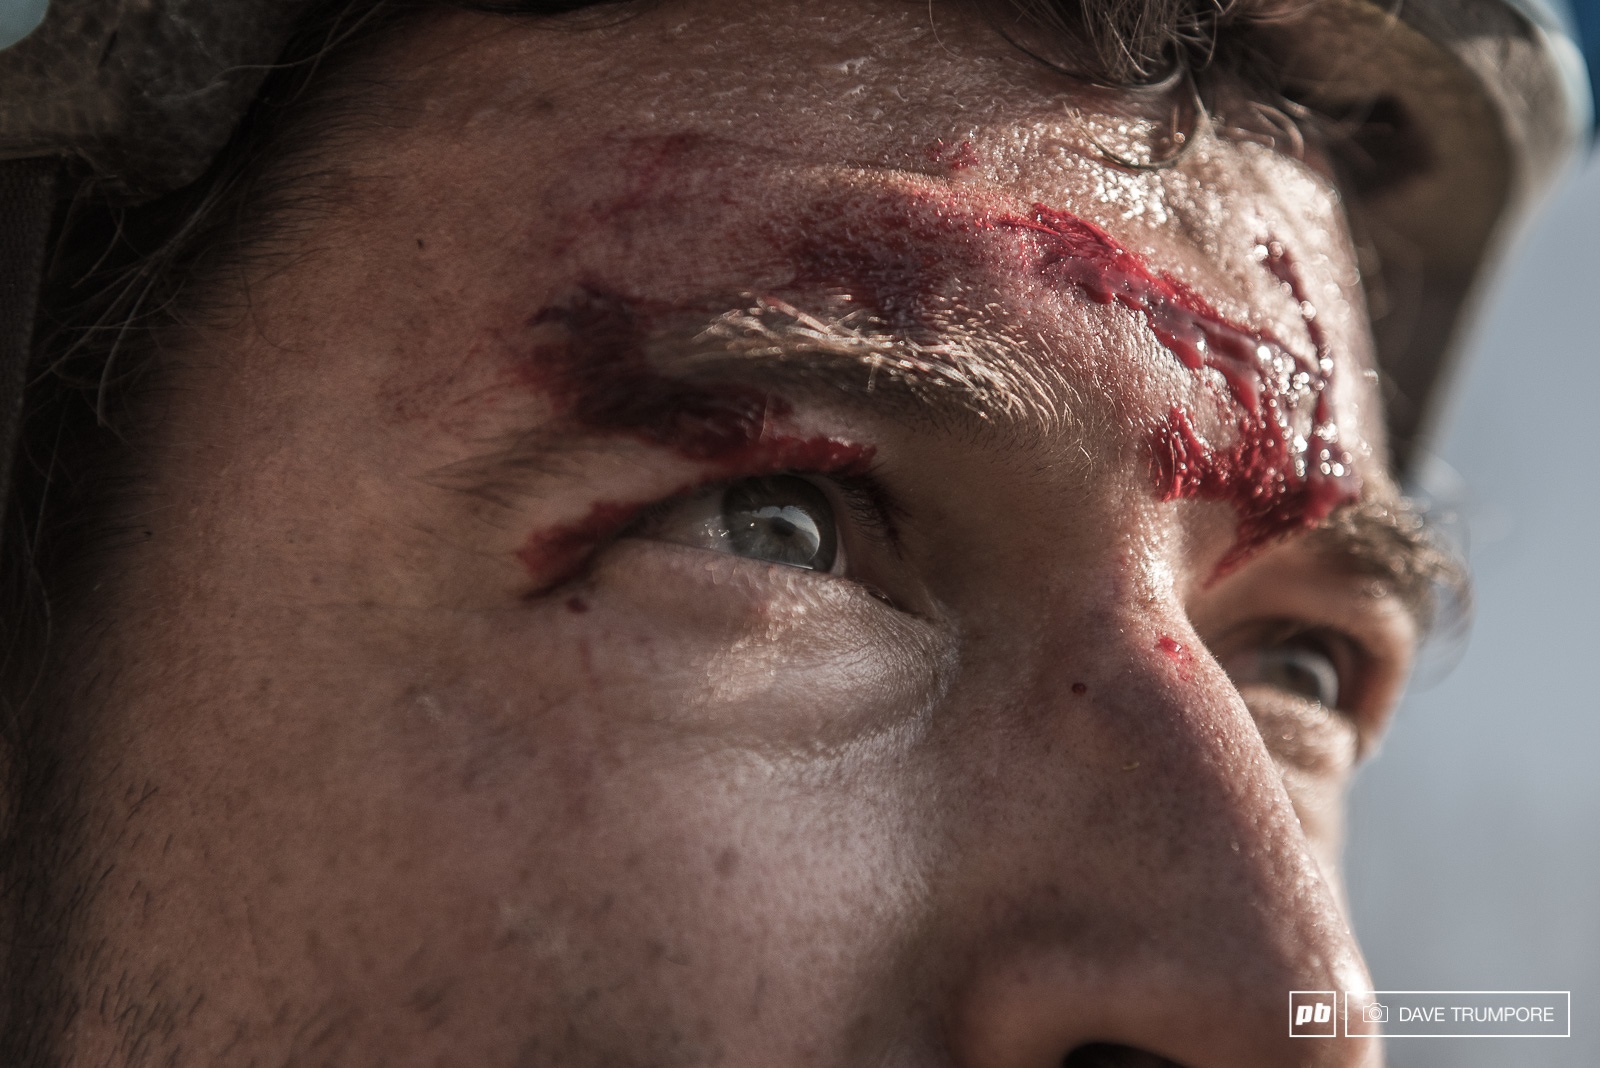 Proof the race organizers bleed for enduro racing here in Chile.